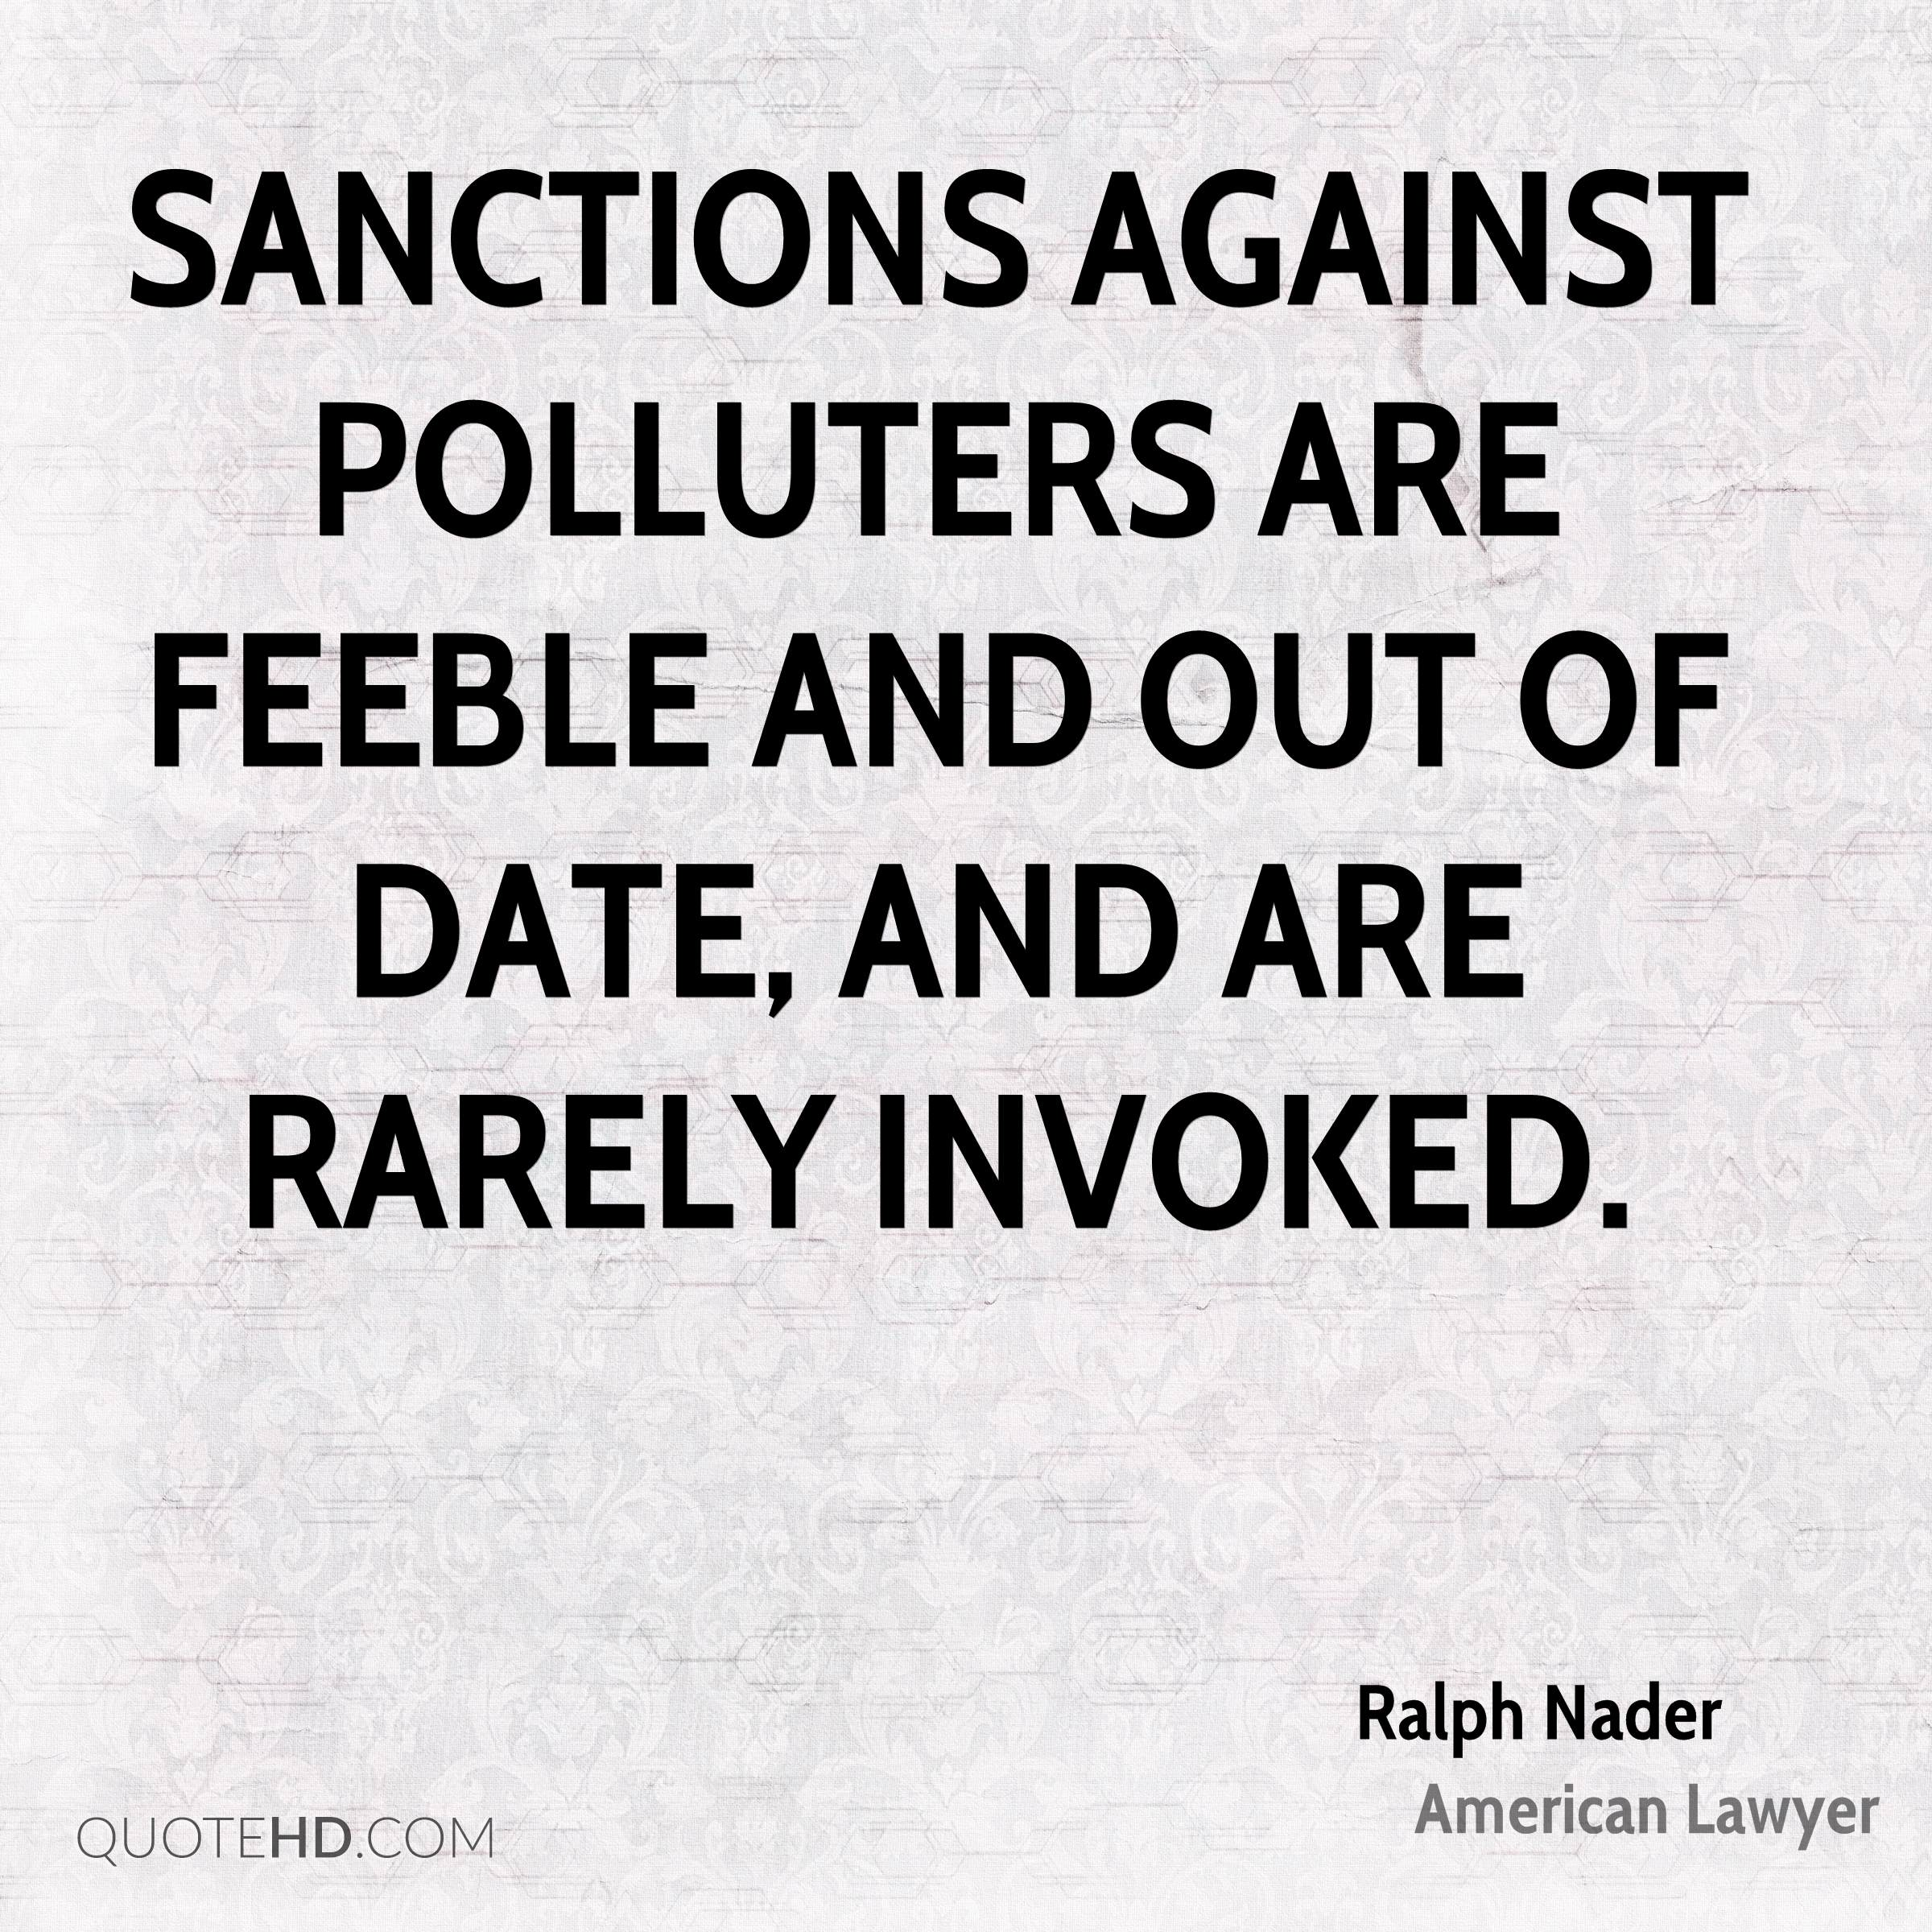 Sanctions against polluters are feeble and out of date, and are rarely invoked.